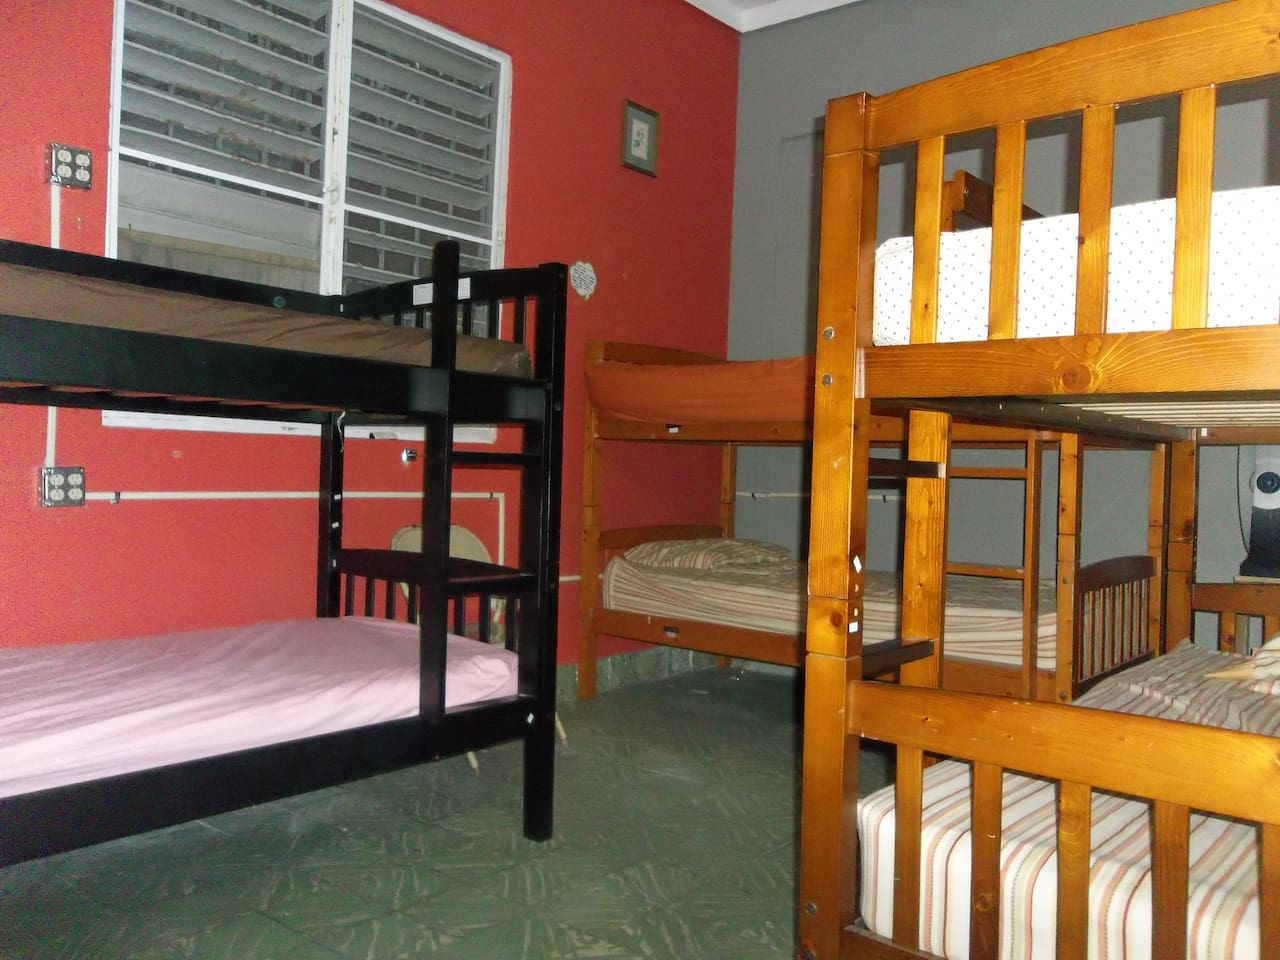 Three steady wooden bunk beds with electric outlets by each bed side